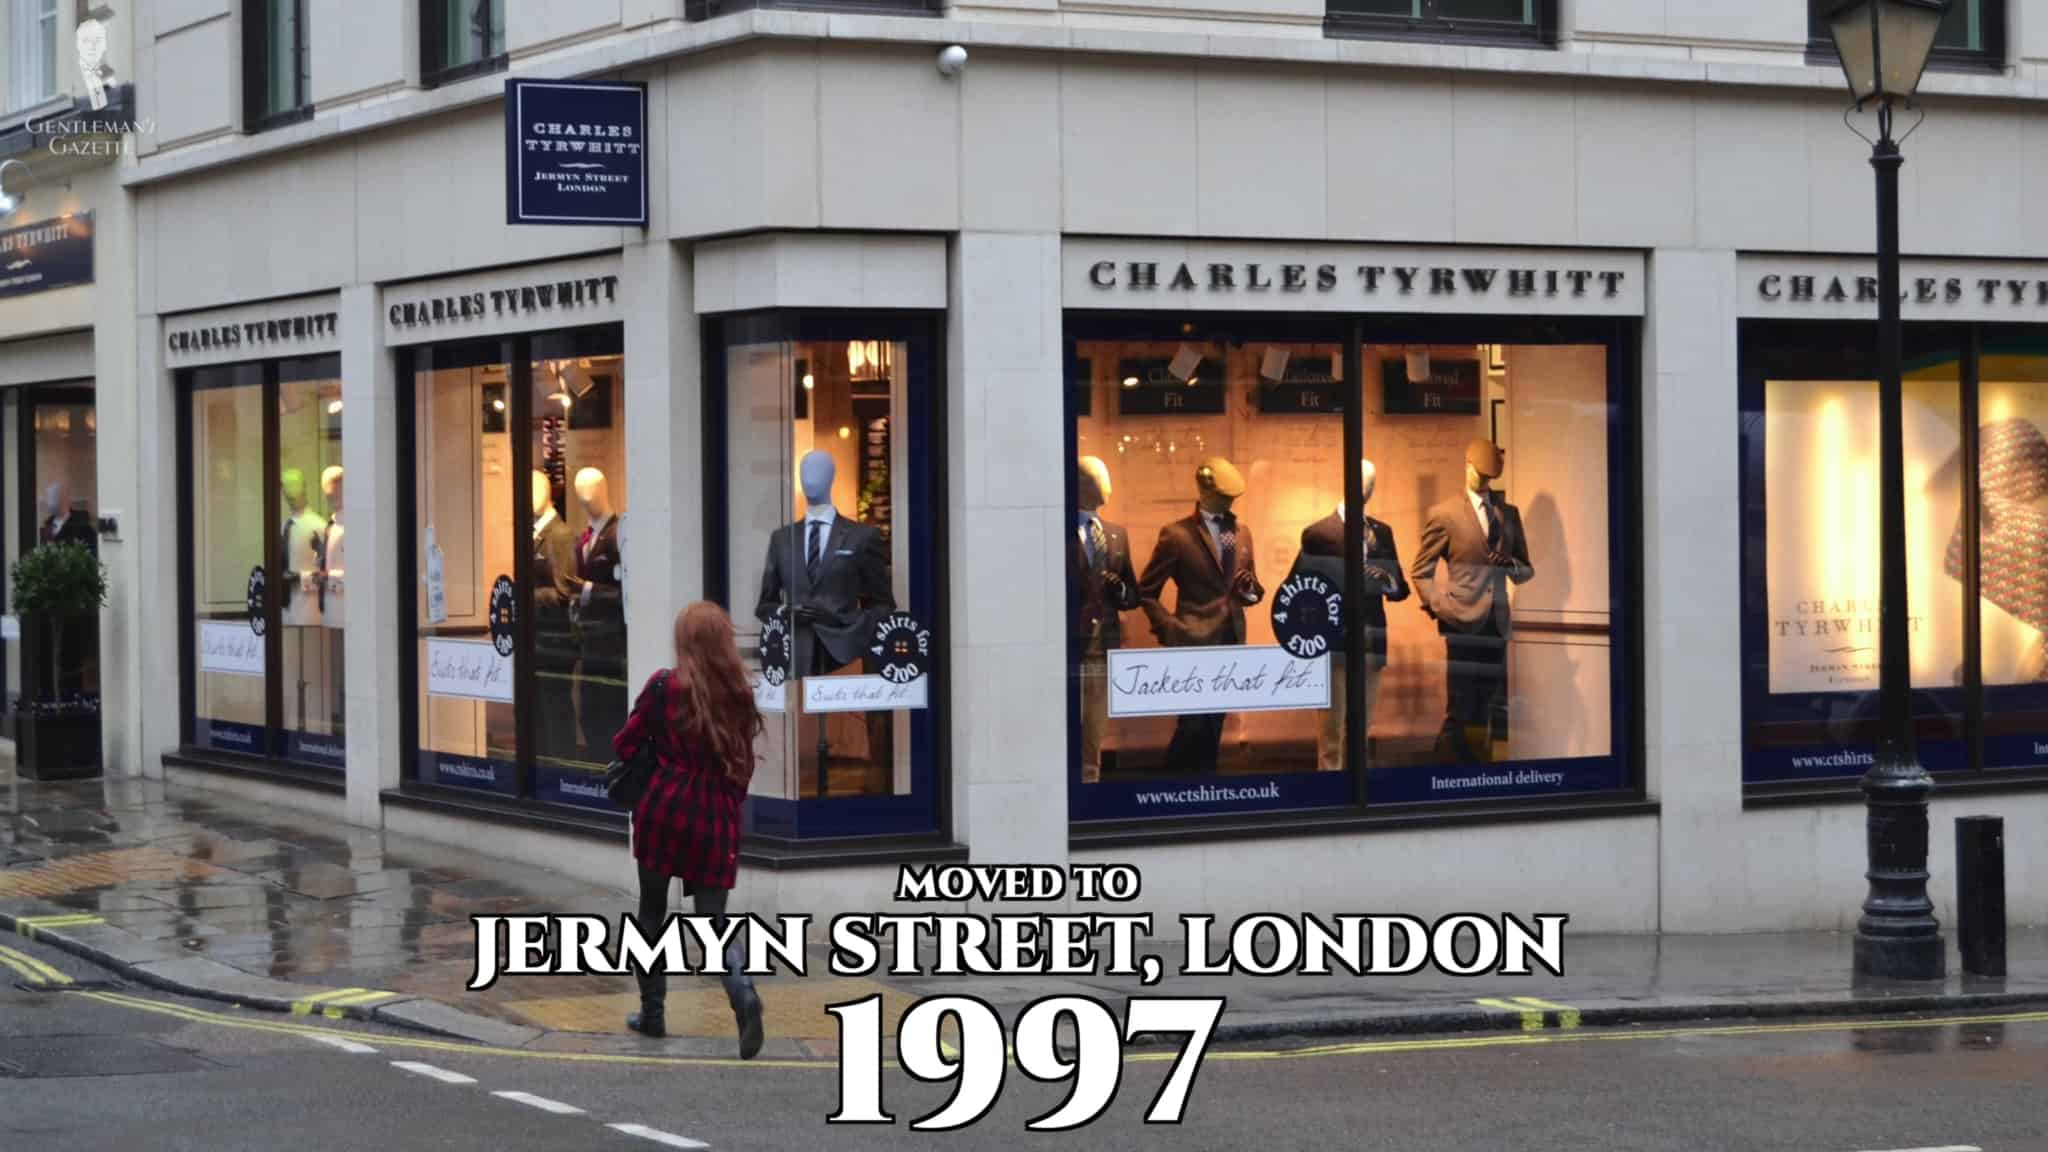 Charles Tyrwhitt moved its flagship store to Jermyn Street in 1997.